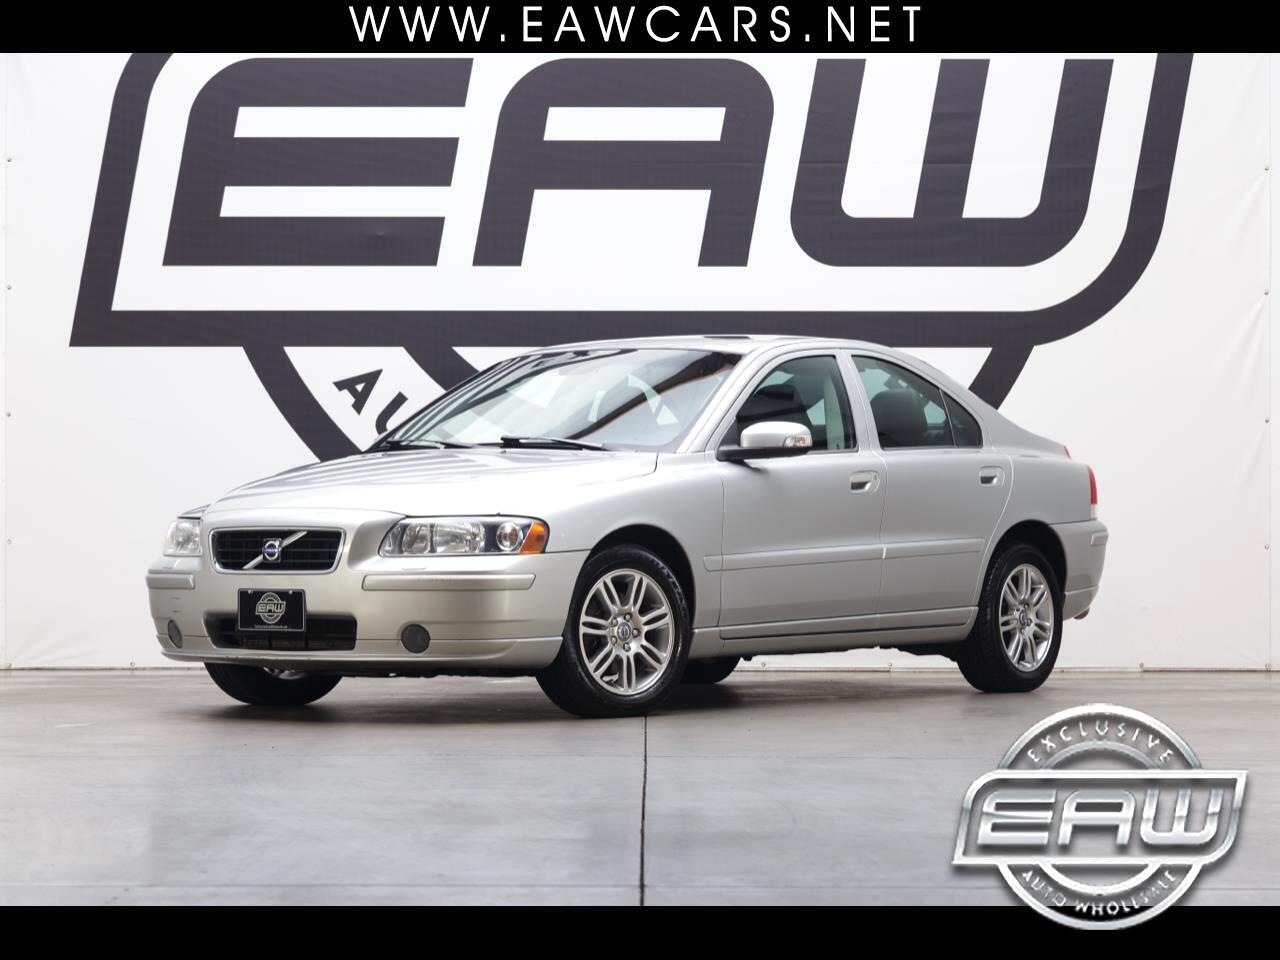 2009 Volvo S60 4dr Sdn 2.5T AWD